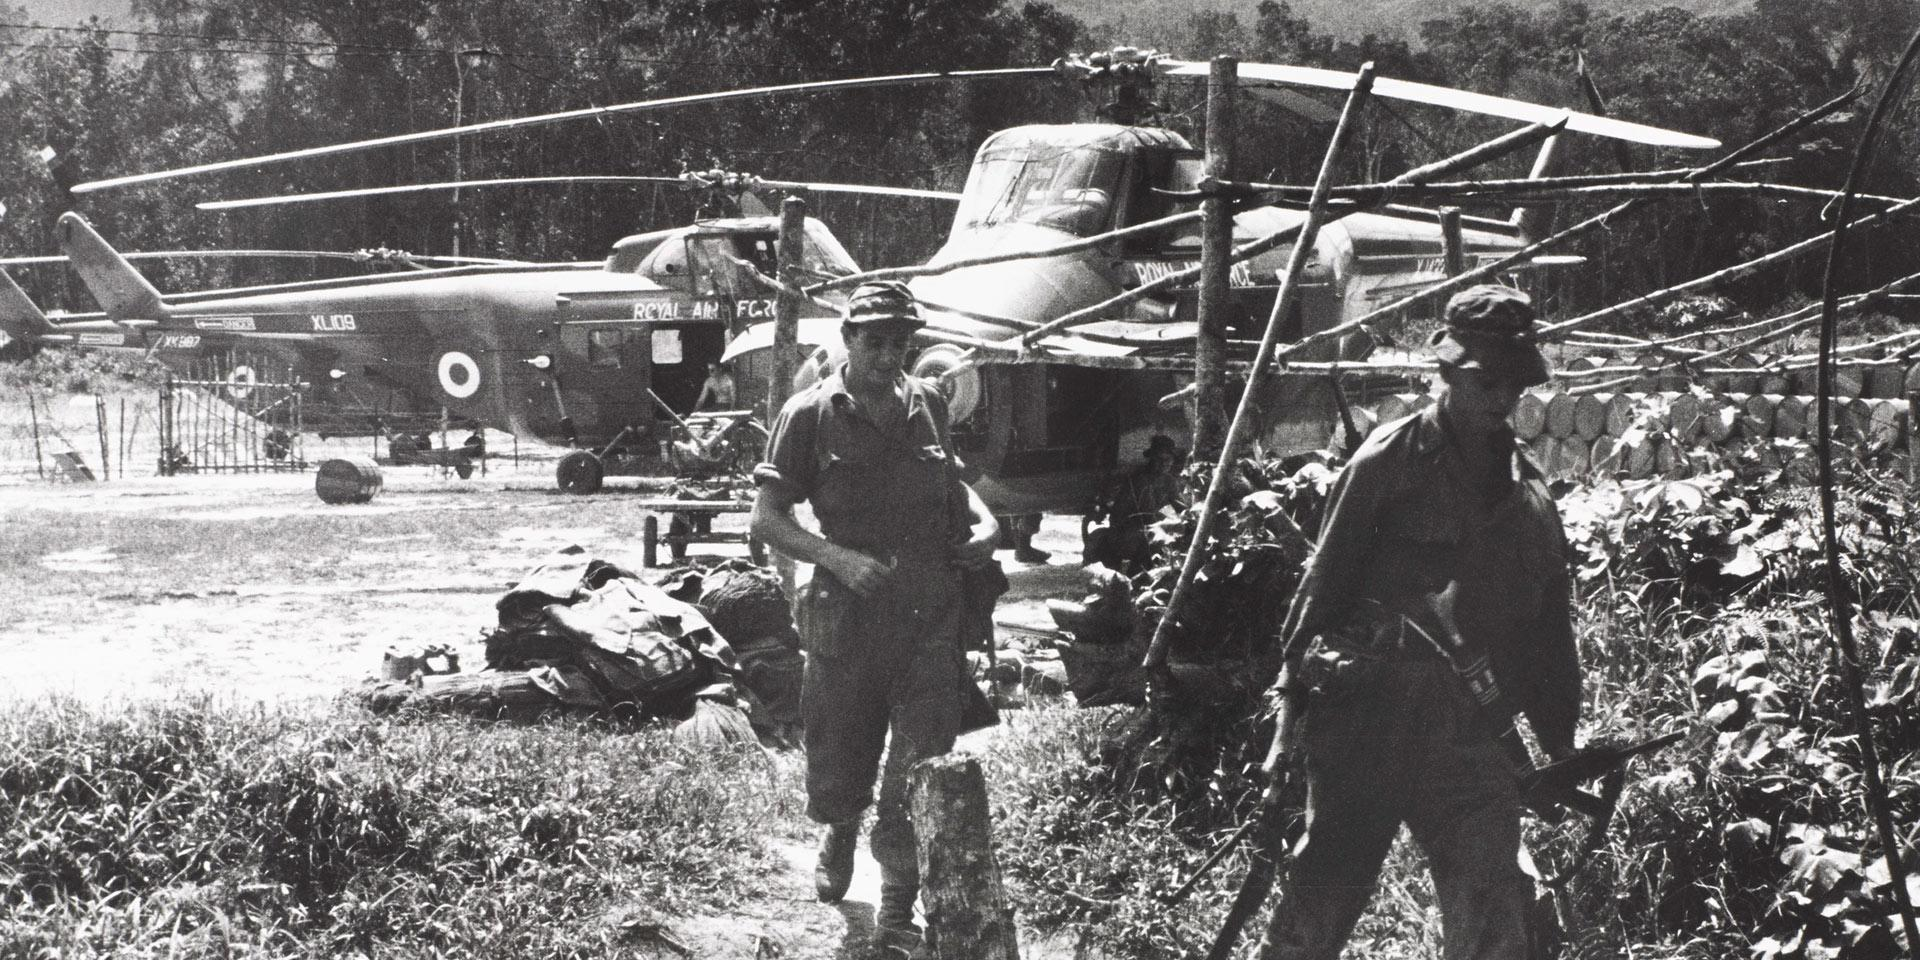 Nanga Gaat, an SAS forward base on the Rejang River, North Borneo, 1964